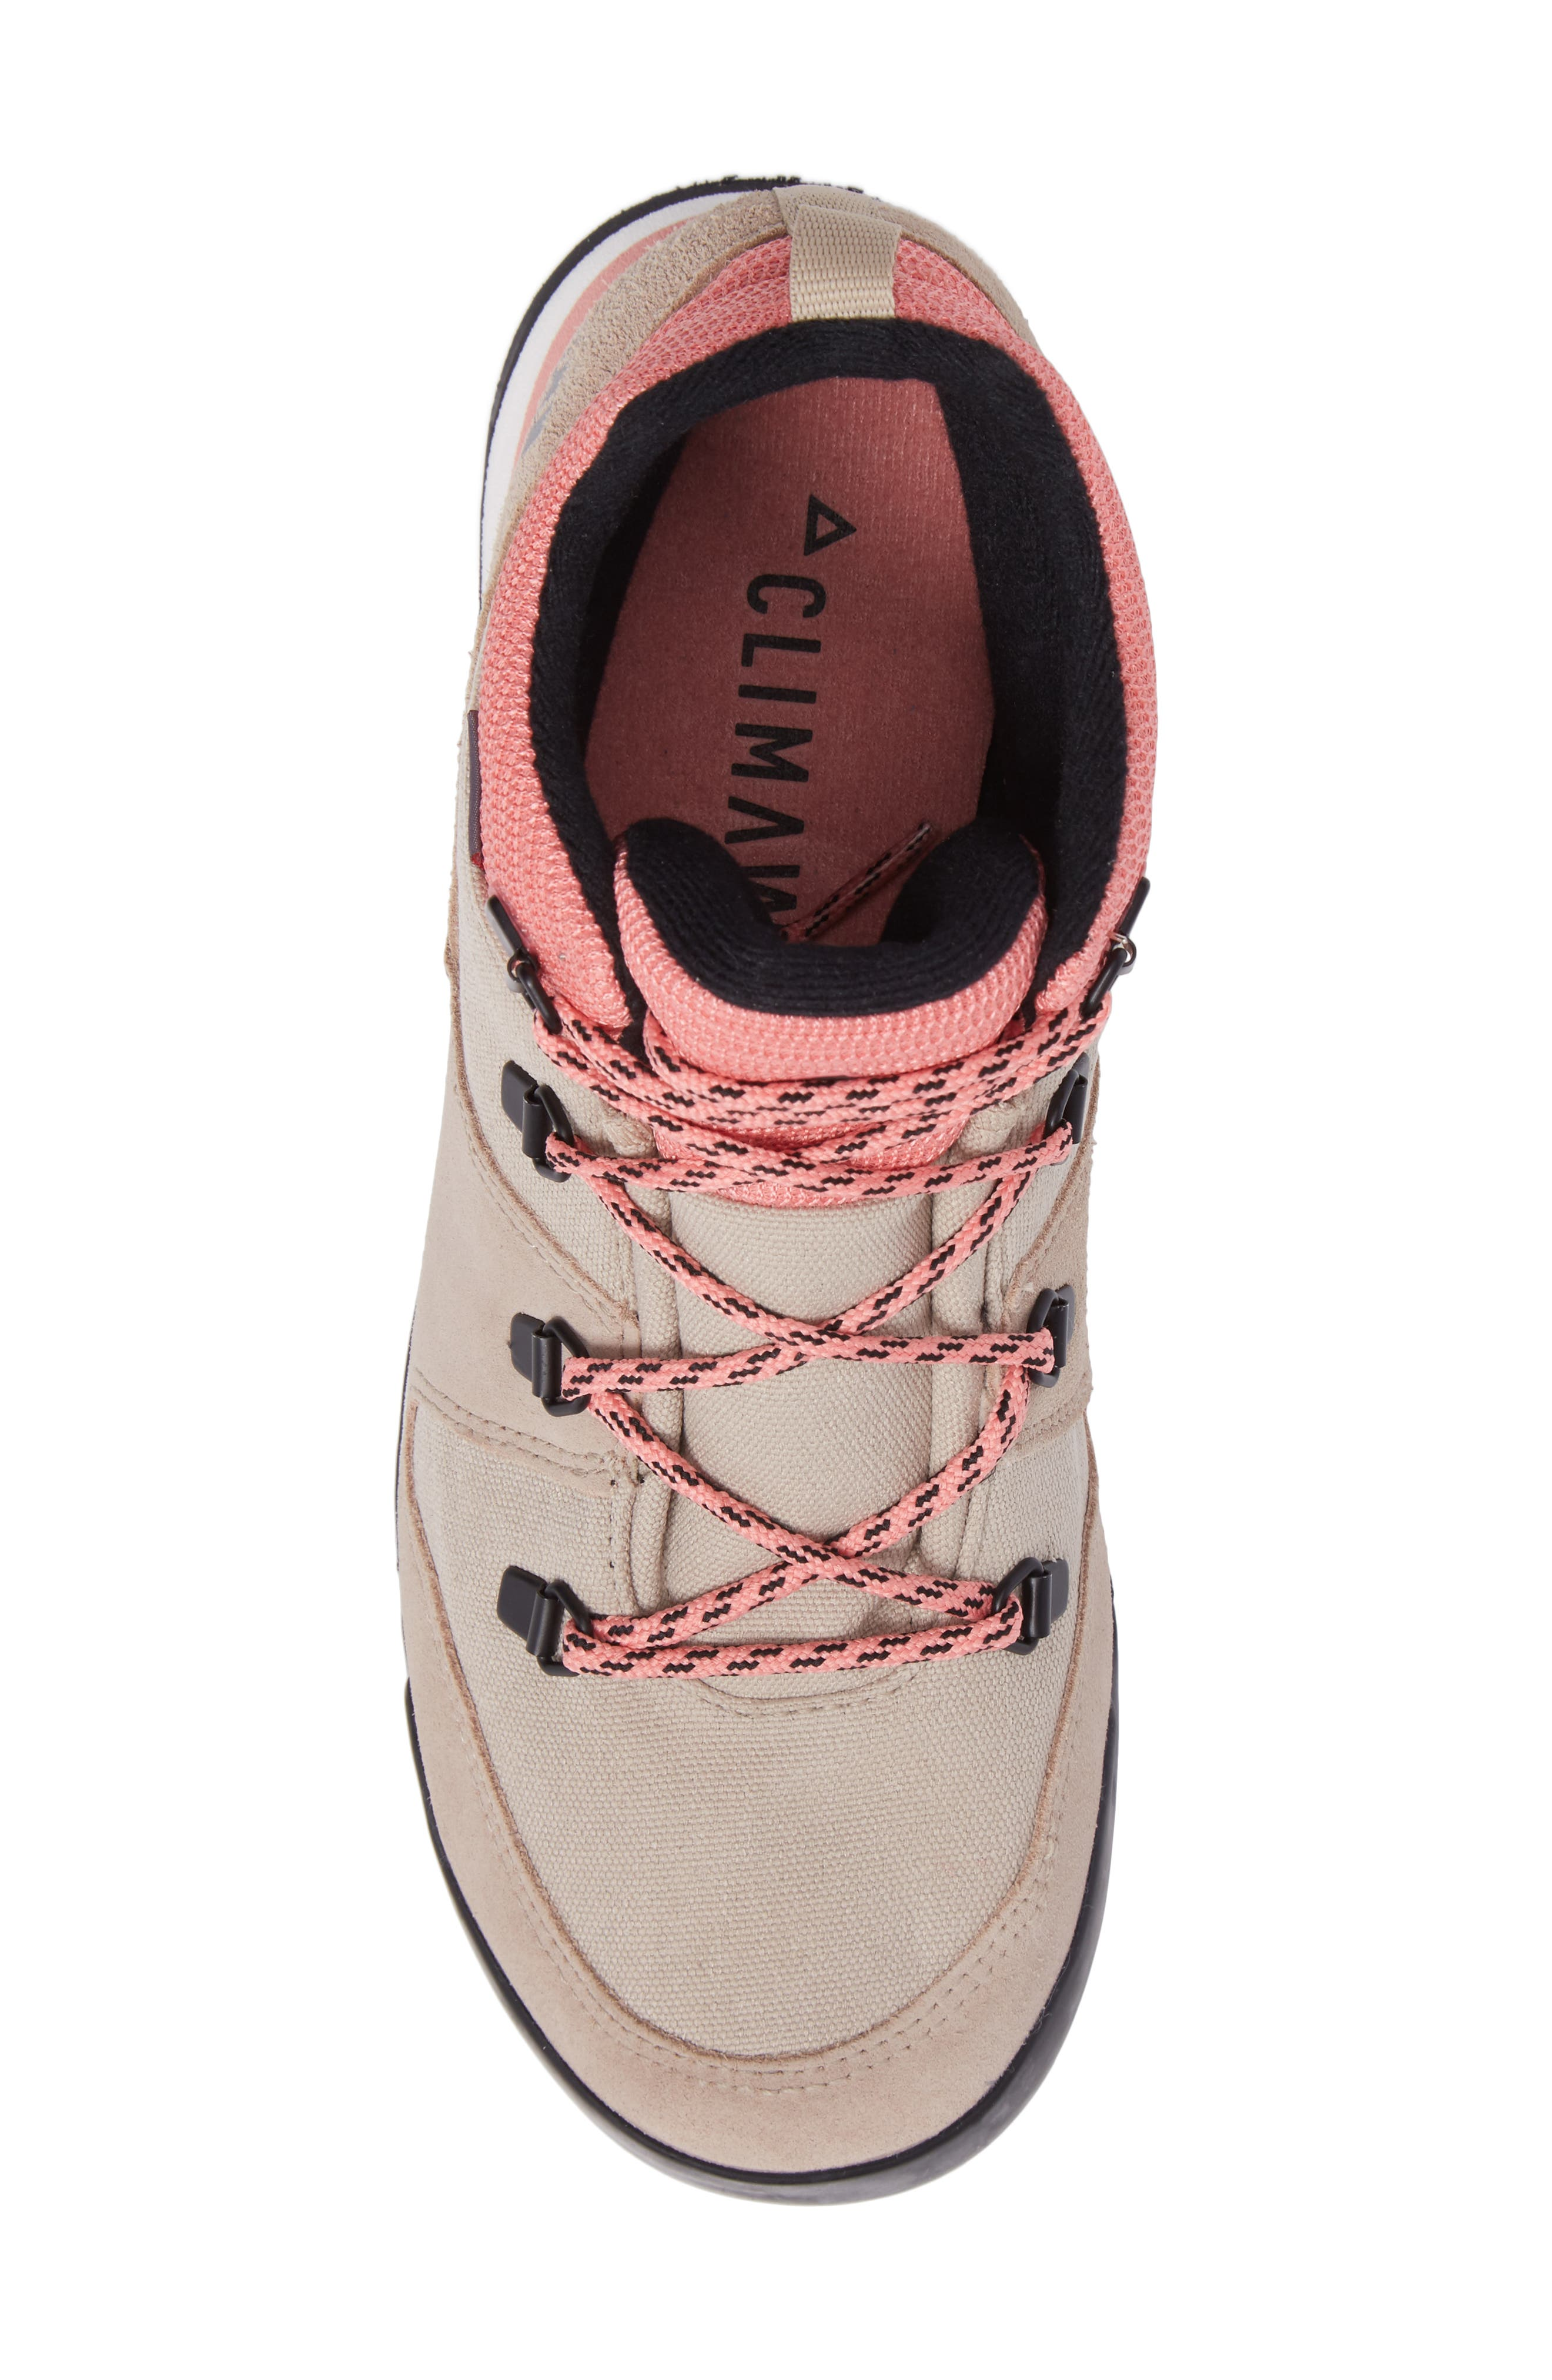 Snowpitch Insulated Sneaker Boot,                             Alternate thumbnail 5, color,                             Icey Pink/ Khaki/ Energy Pink